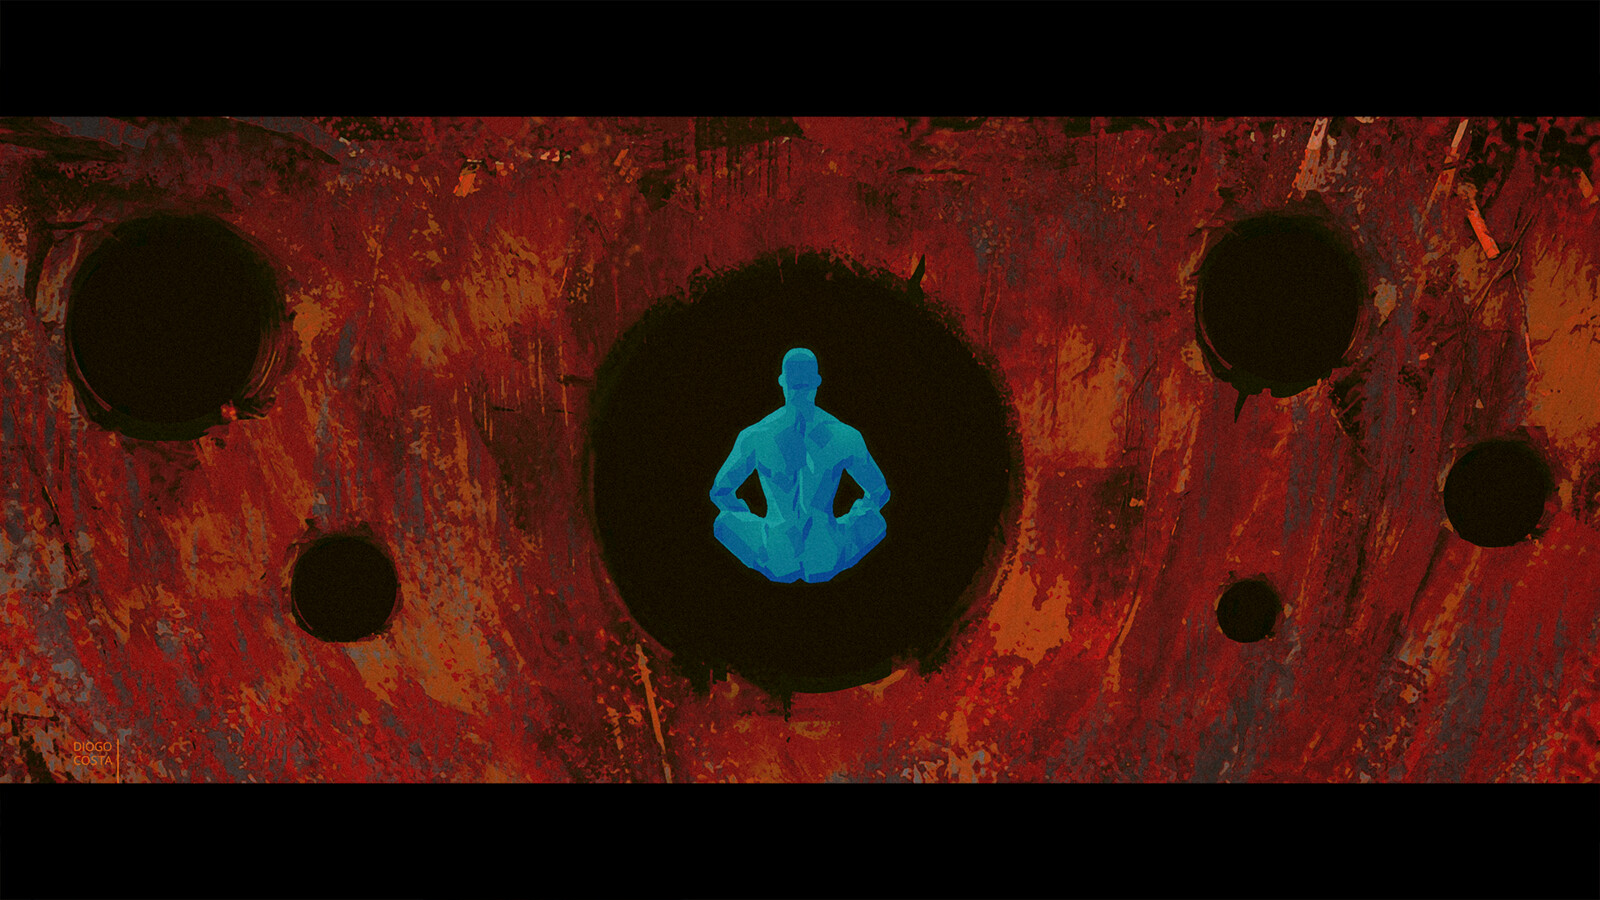 While the World burns, Dr. Manhattan creates life on another planet.